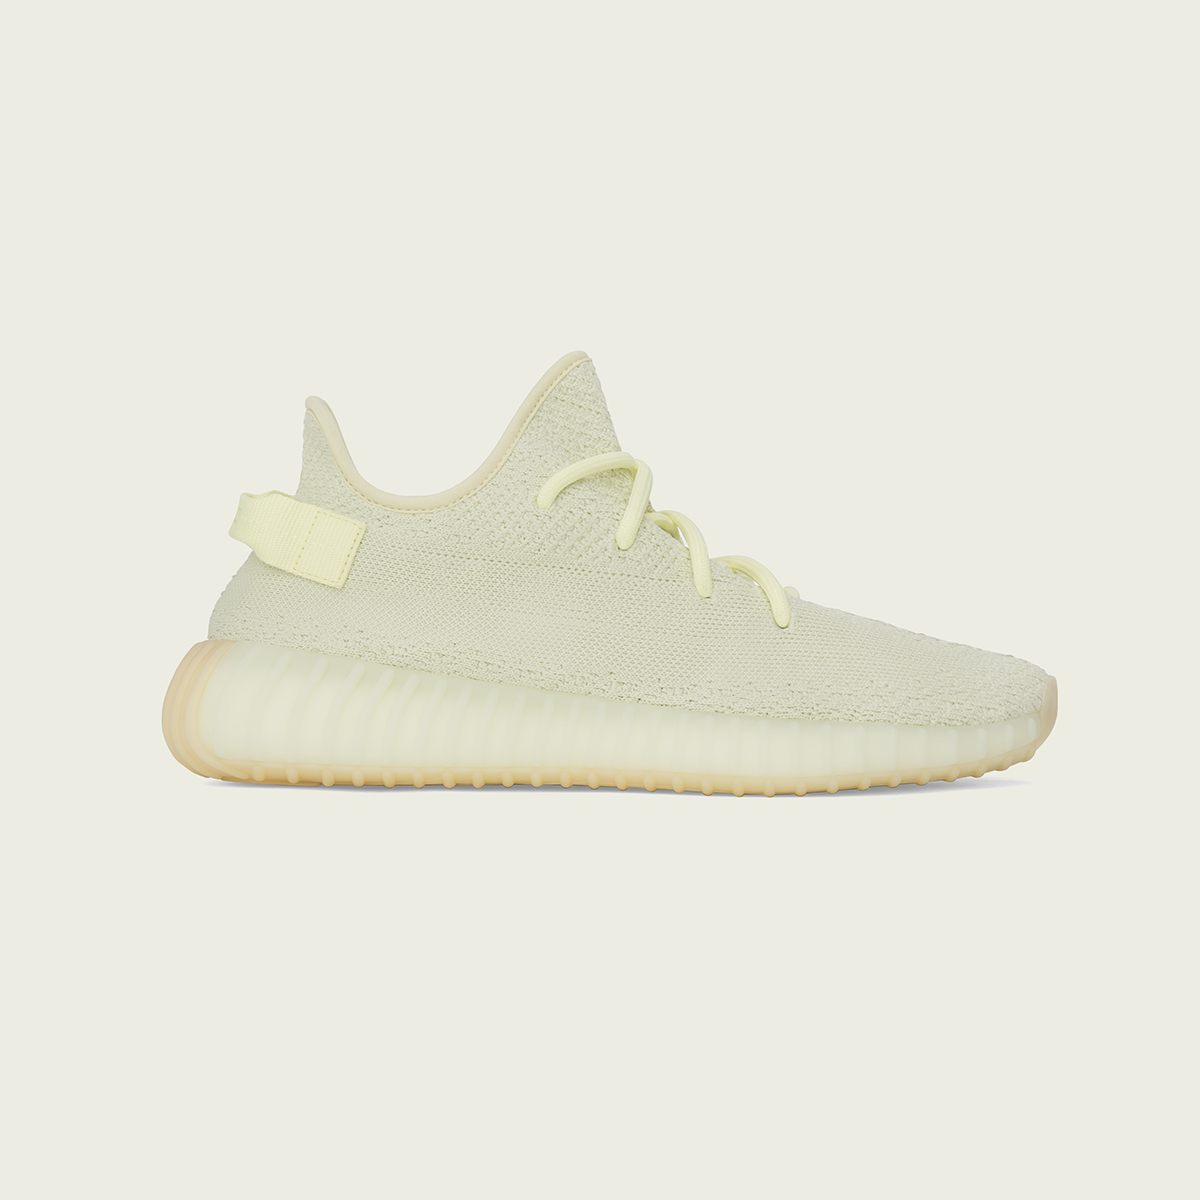 adidas Originals YEEZY BOOST 350 V2 'Butter' In-Store Raffle – CLOSED